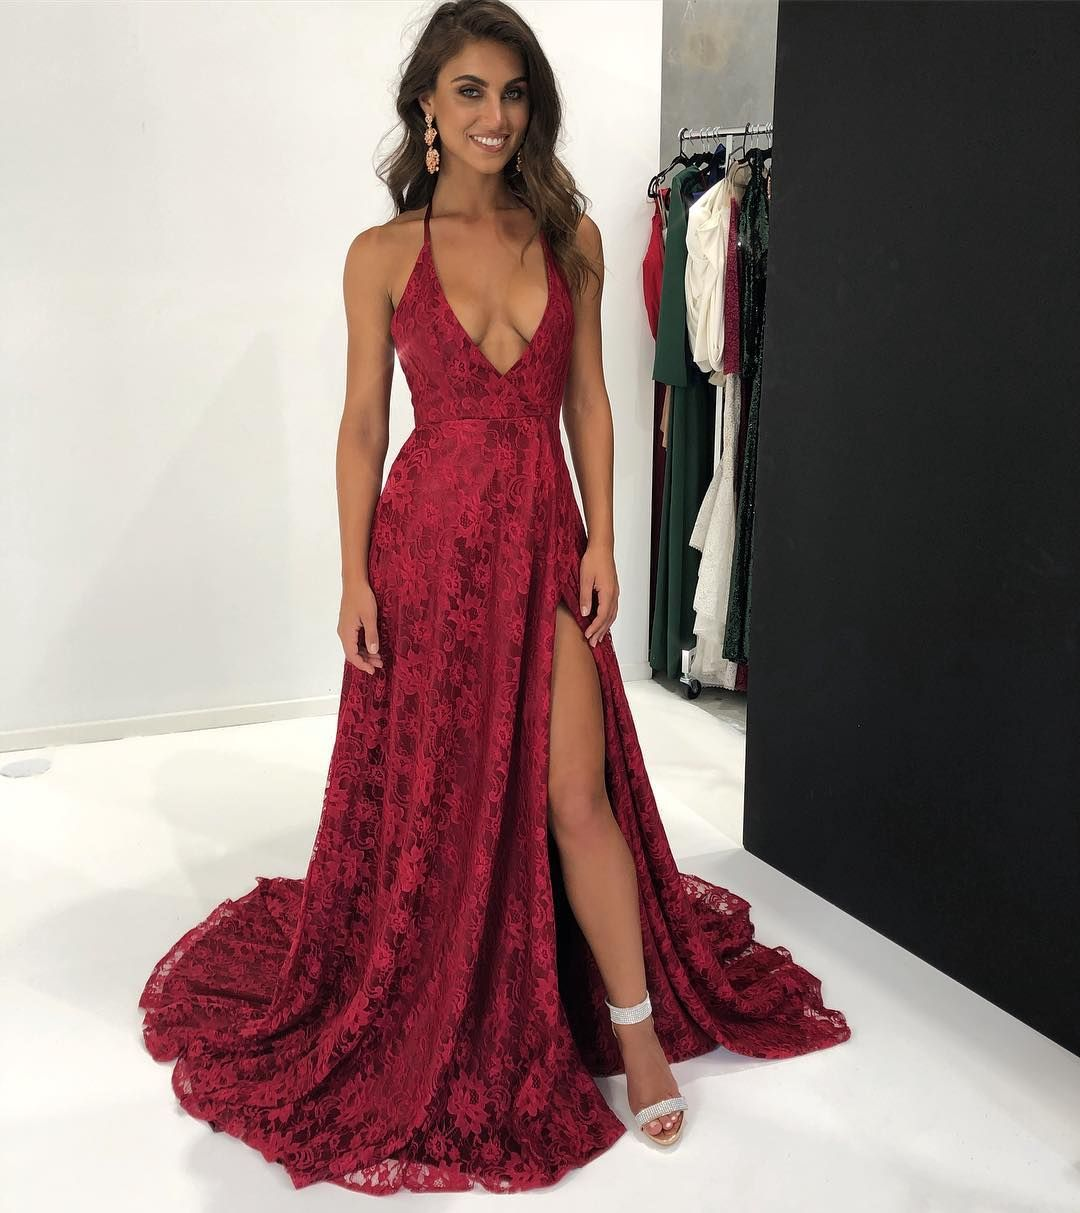 """11055794ffc A N LUXE LABEL on Instagram  """"Frida Lace Gown ❣ our latest obsession! We  are having a 20% off sale this month. Use coupon code """"Xmas2017"""" at ..."""